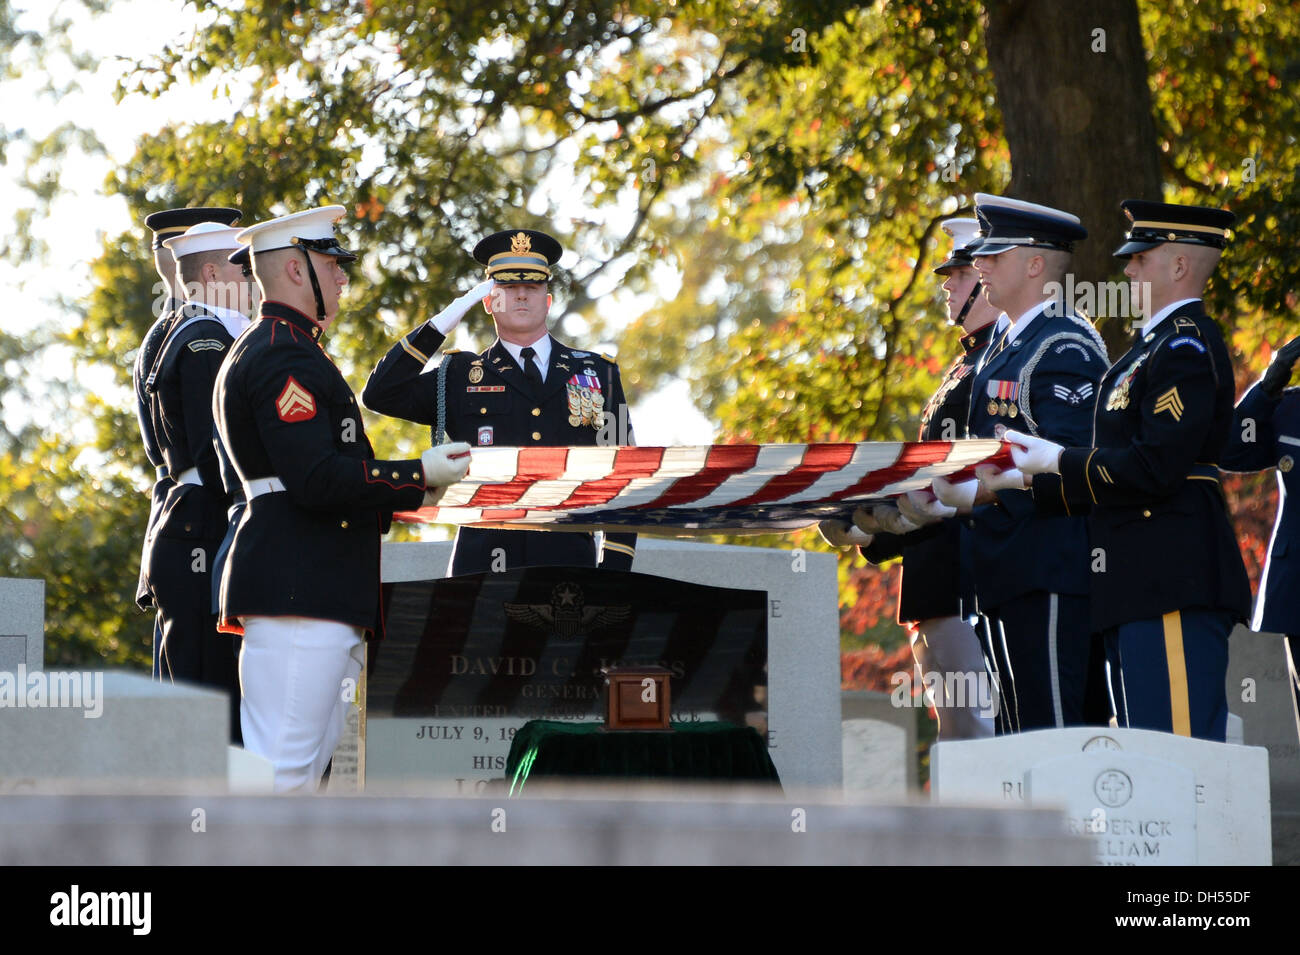 U.S. Service members of the Honor Guard participate in the funeral of Gen. David C. Jones, former Chairman of the Joint Chiefs of Staff, at Arlington Cemetery in Arlington, Va., Oct. 25, 2013. - Stock Image